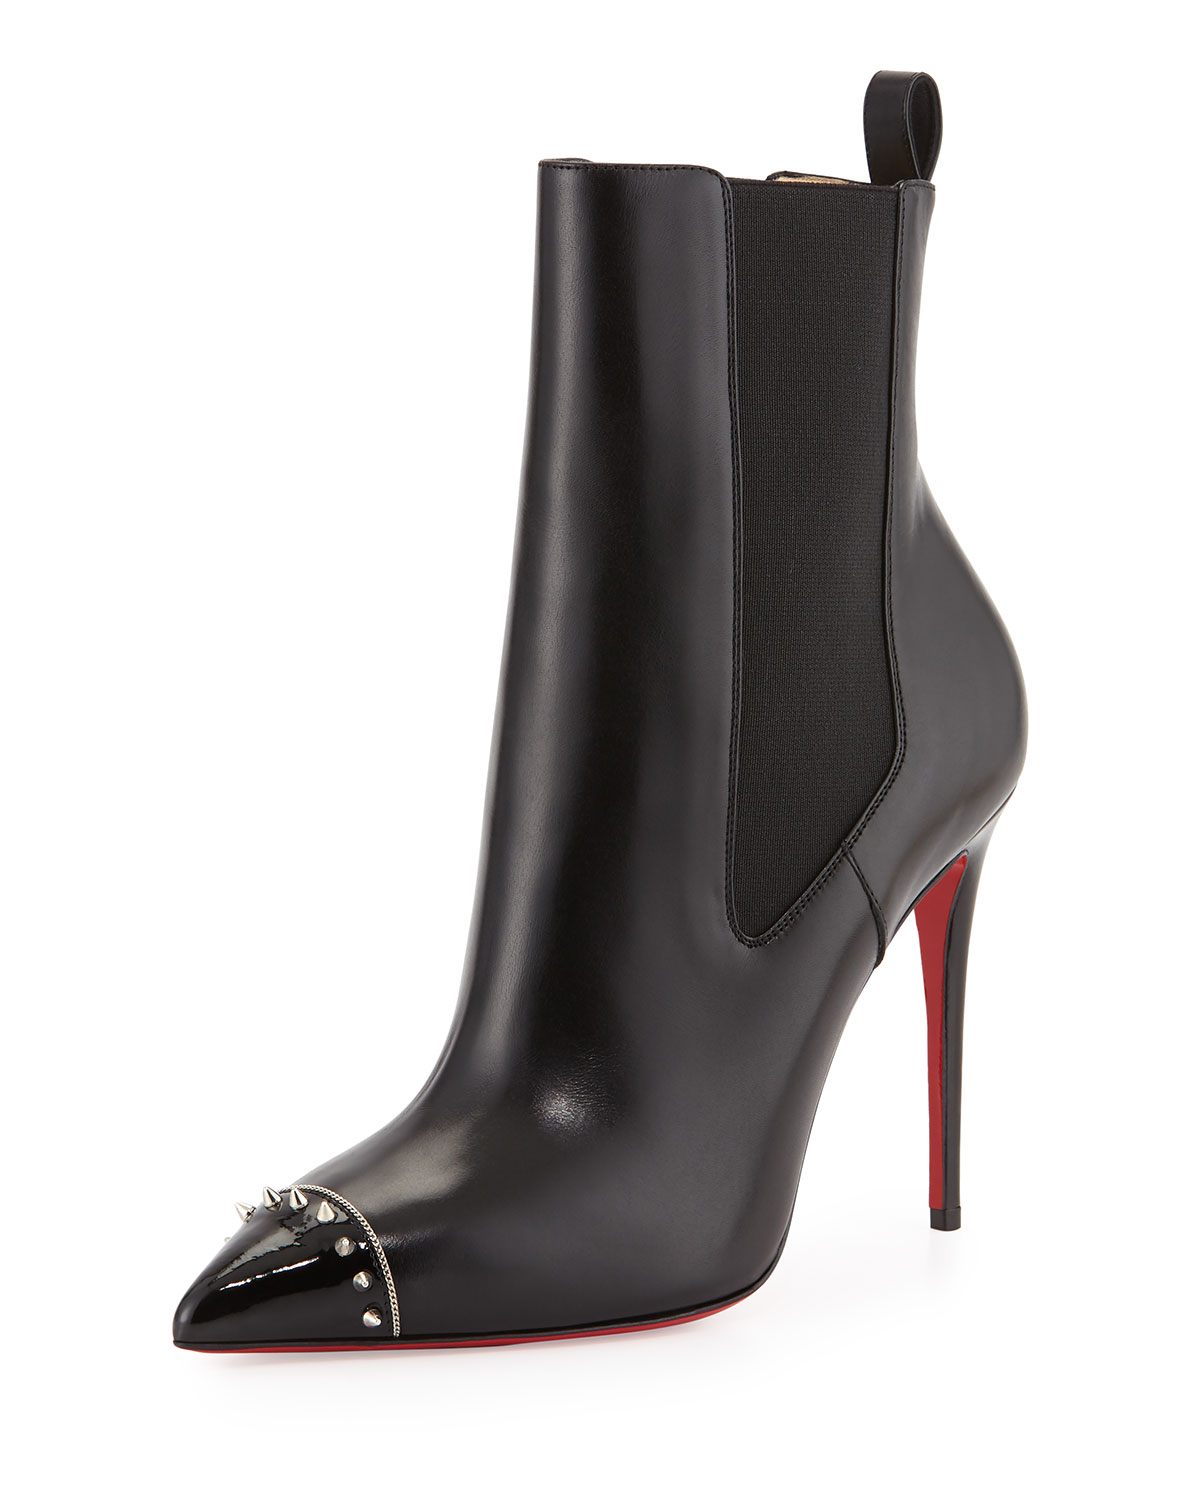 Banjo Spiked Cap-Toe Red Sole Bootie, Black, Women's, Size: 10 1/2B - Christian Louboutin